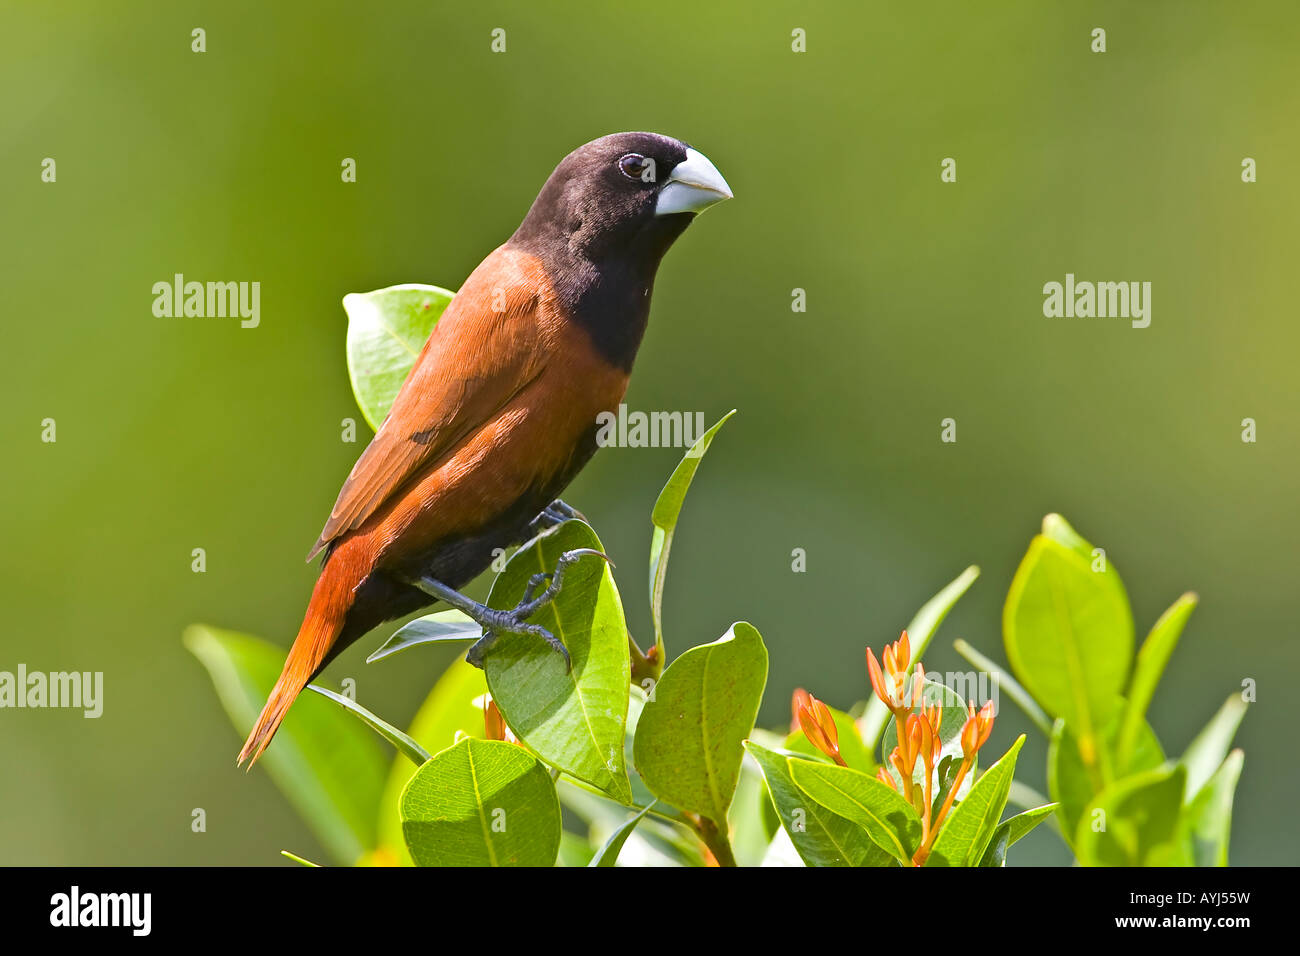 BLACK-HEADED or CHESTNUT MUNIA Lonchura malacca jagori - Stock Image